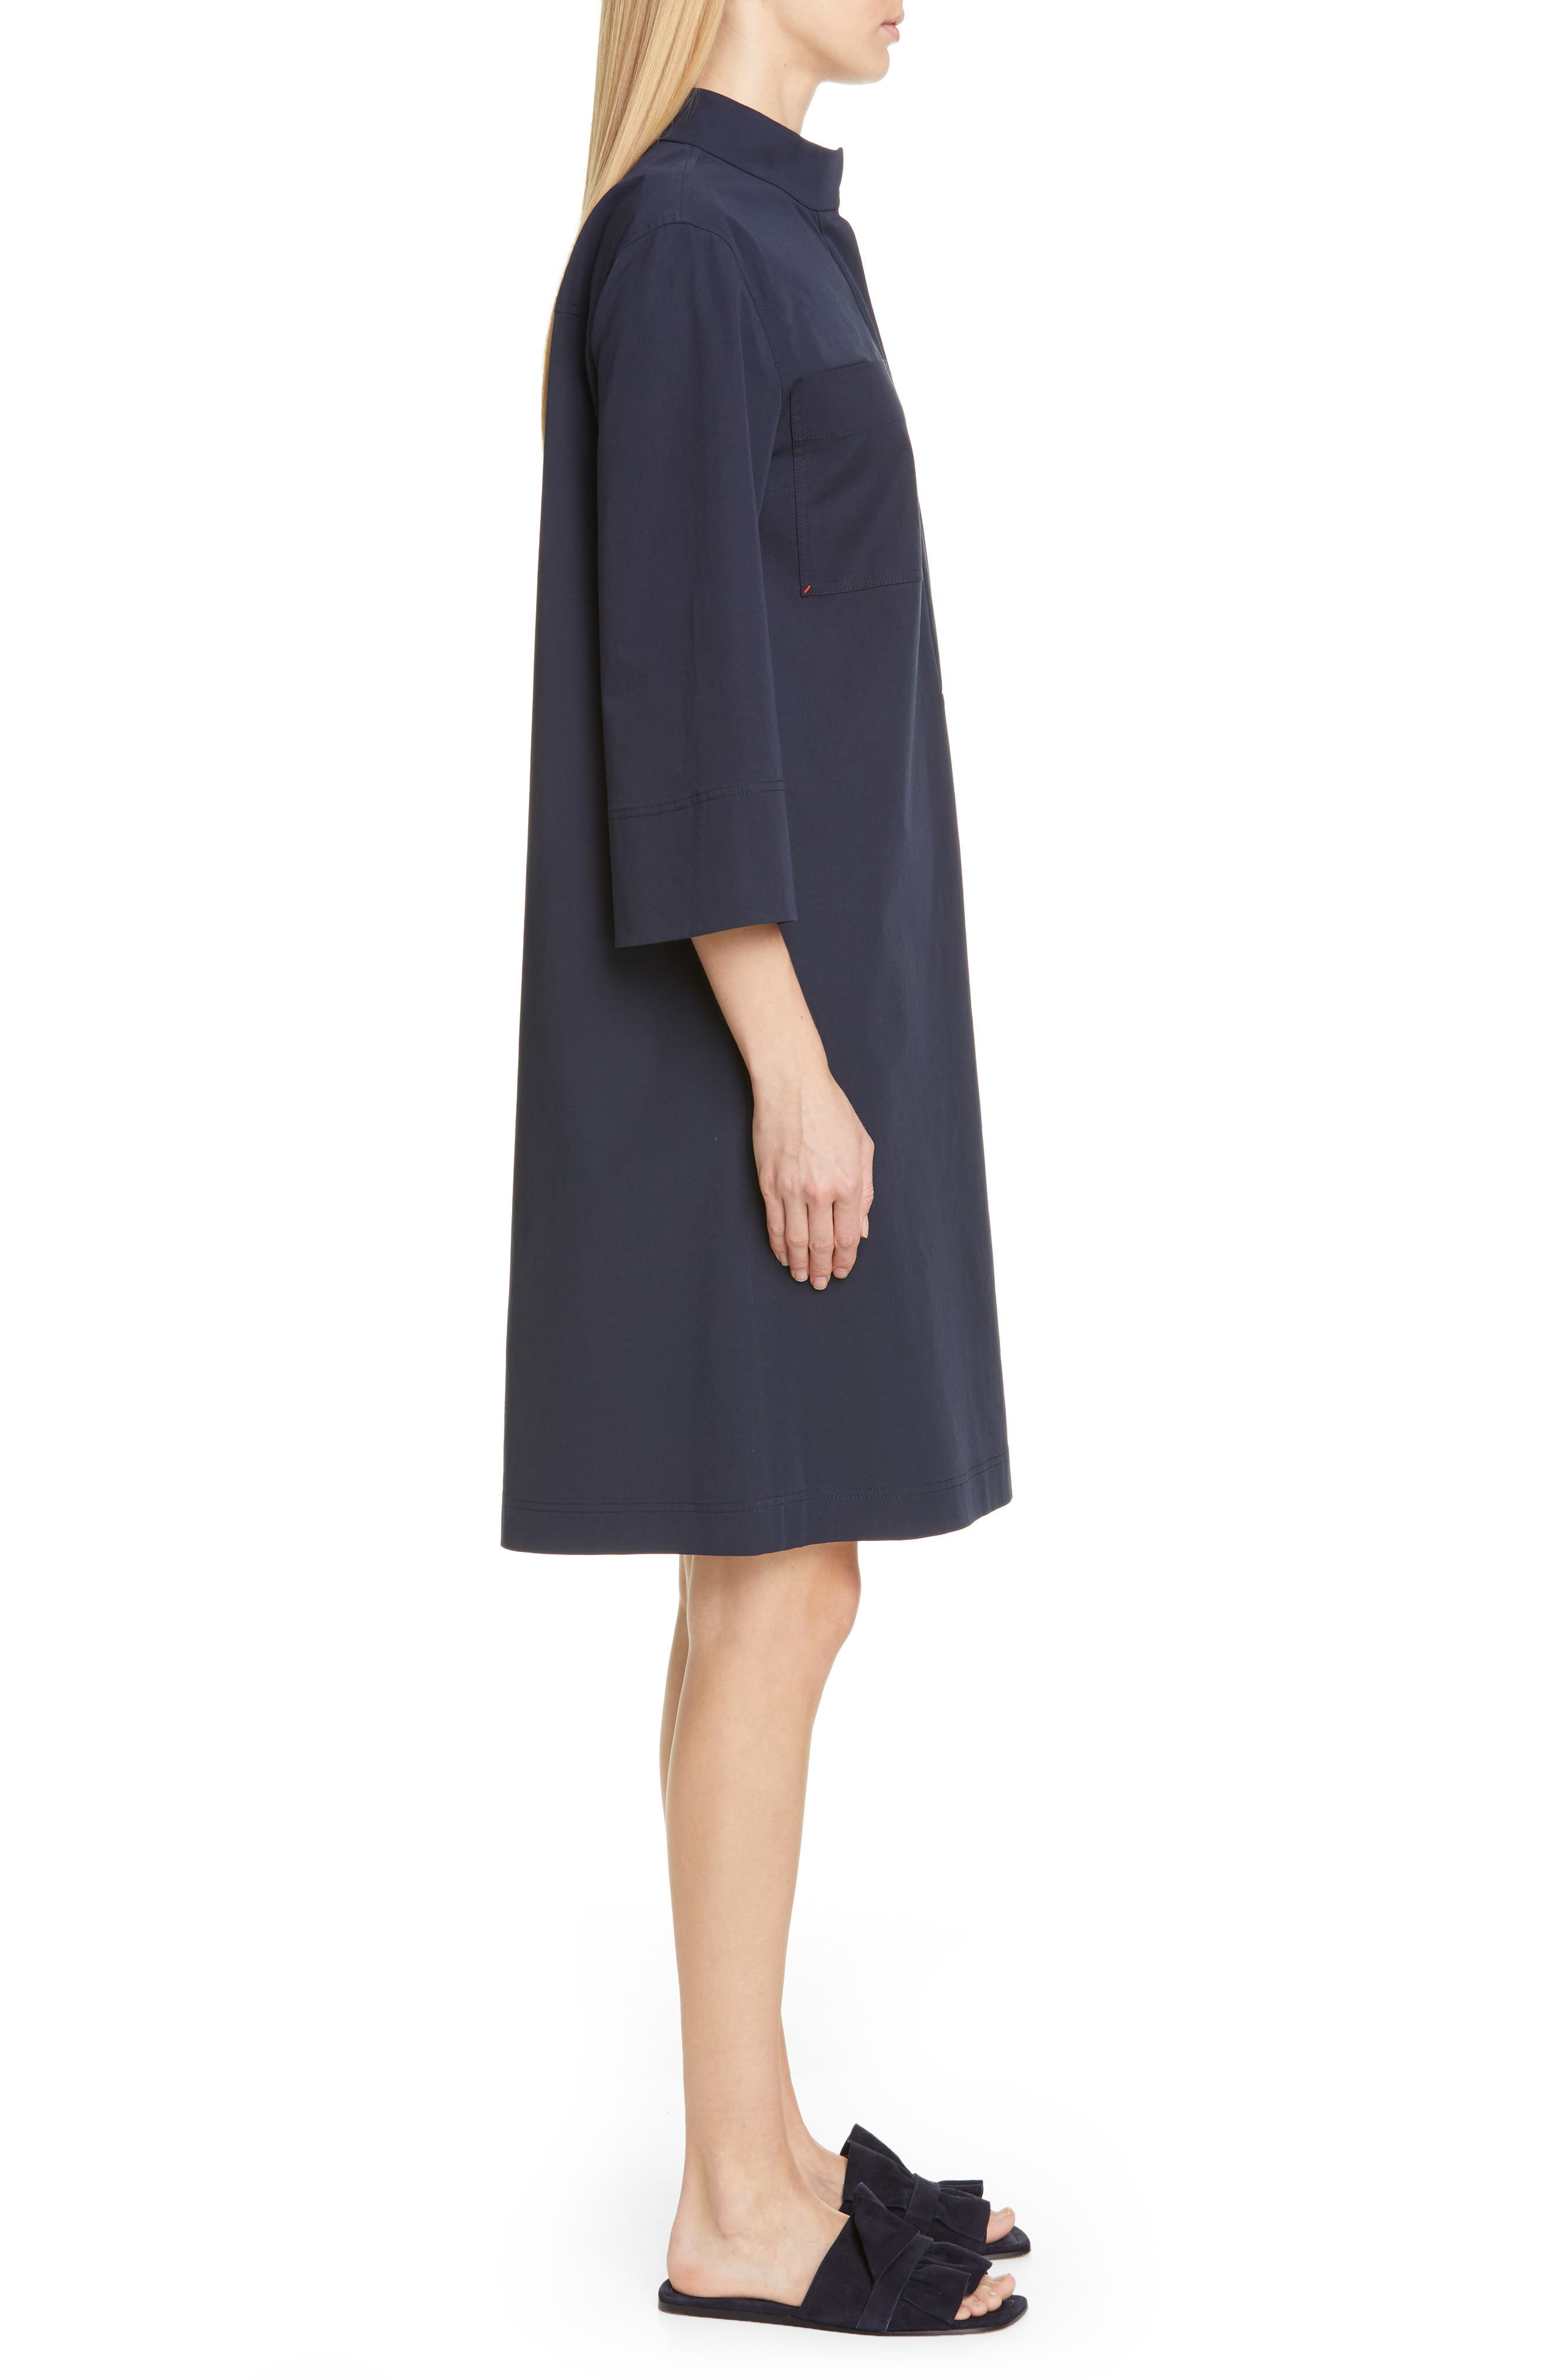 LAFAYETTE 148 NEW YORK, Mitchell Shift Dress, Alternate thumbnail 4, color, INK